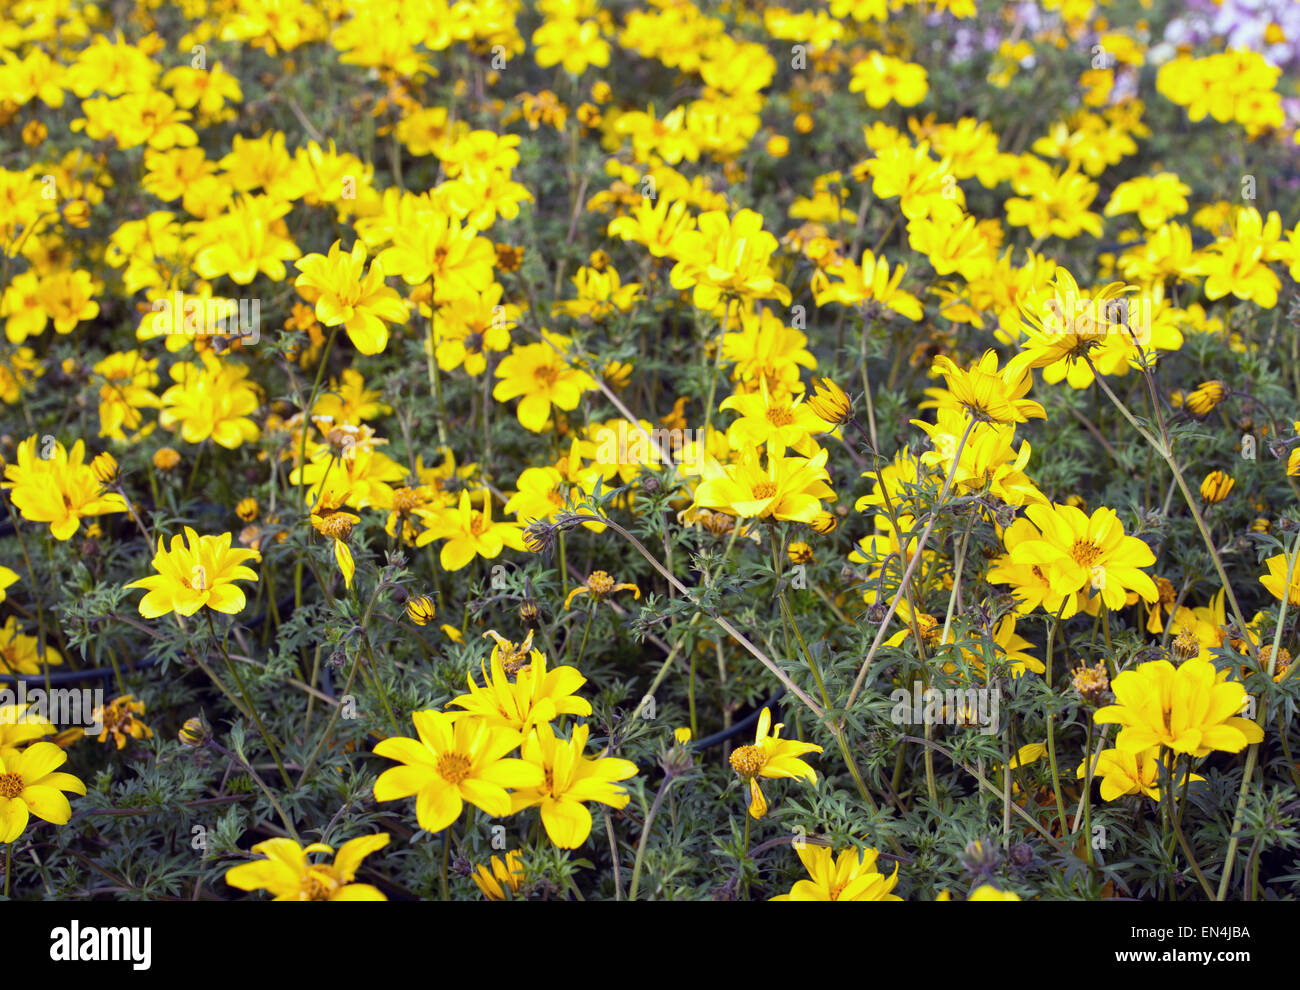 Large field of yellow flowers called bidens in spring stock photo large field of yellow flowers called bidens in spring mightylinksfo